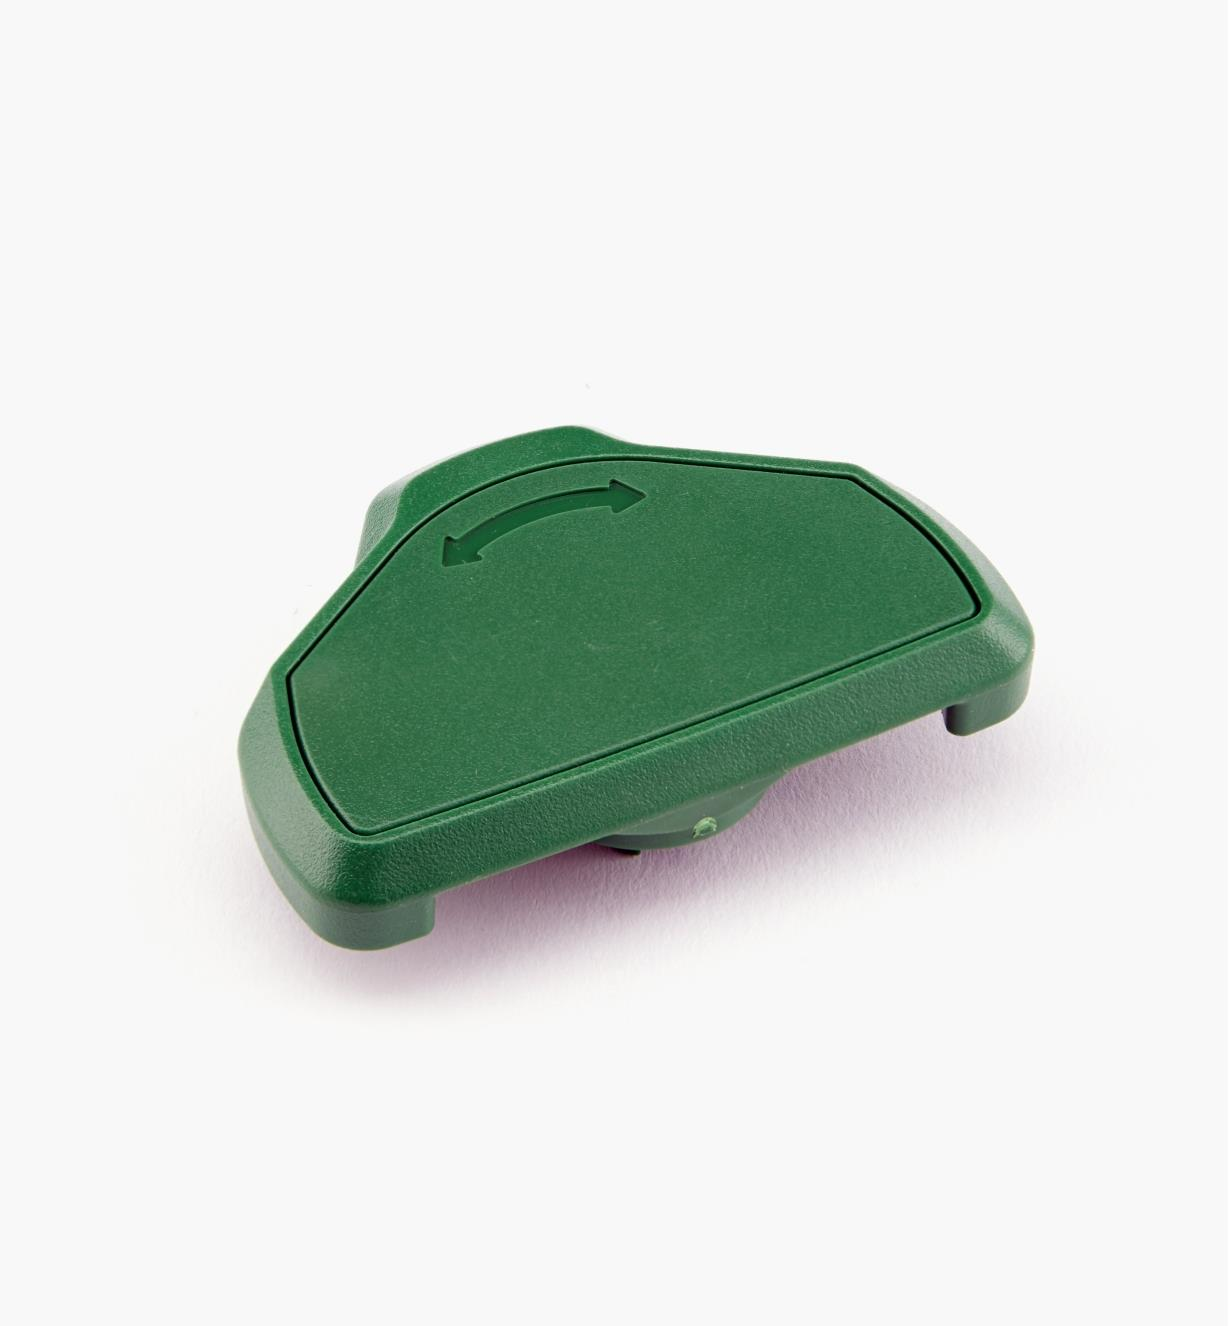 68K4634 - Green Mini Latch, each